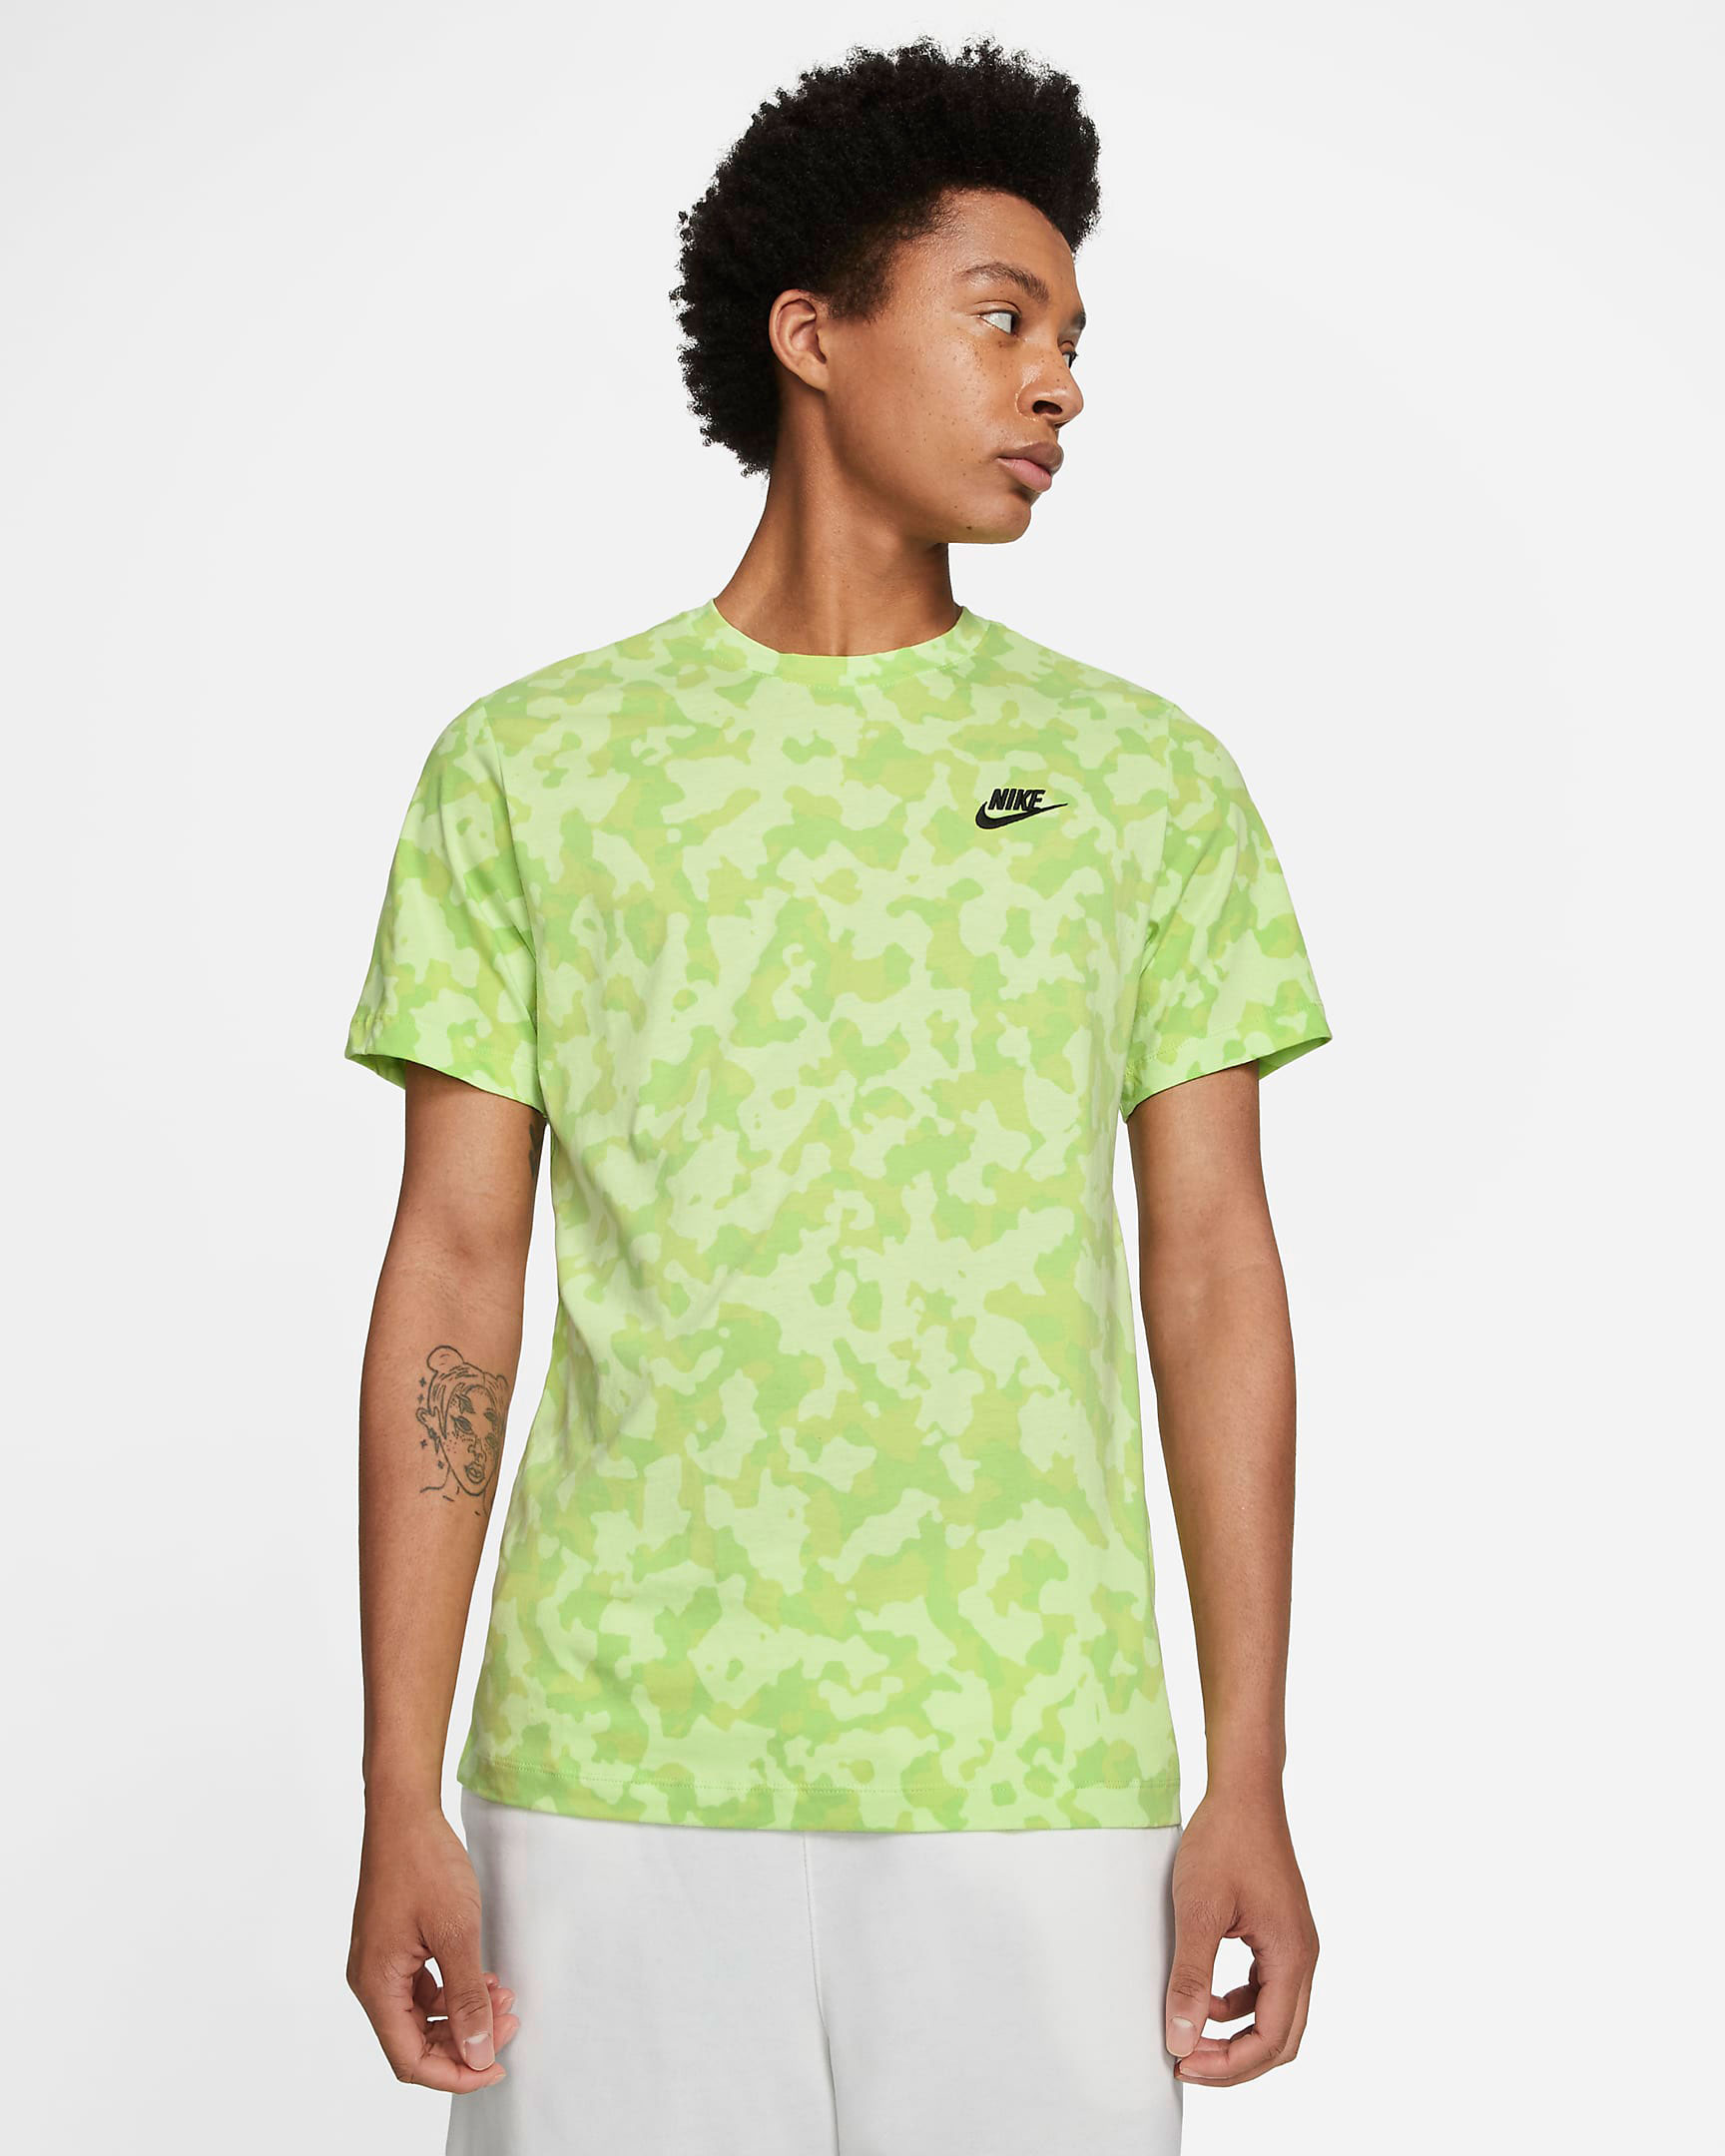 nike-light-liquid-lime-camo-tee